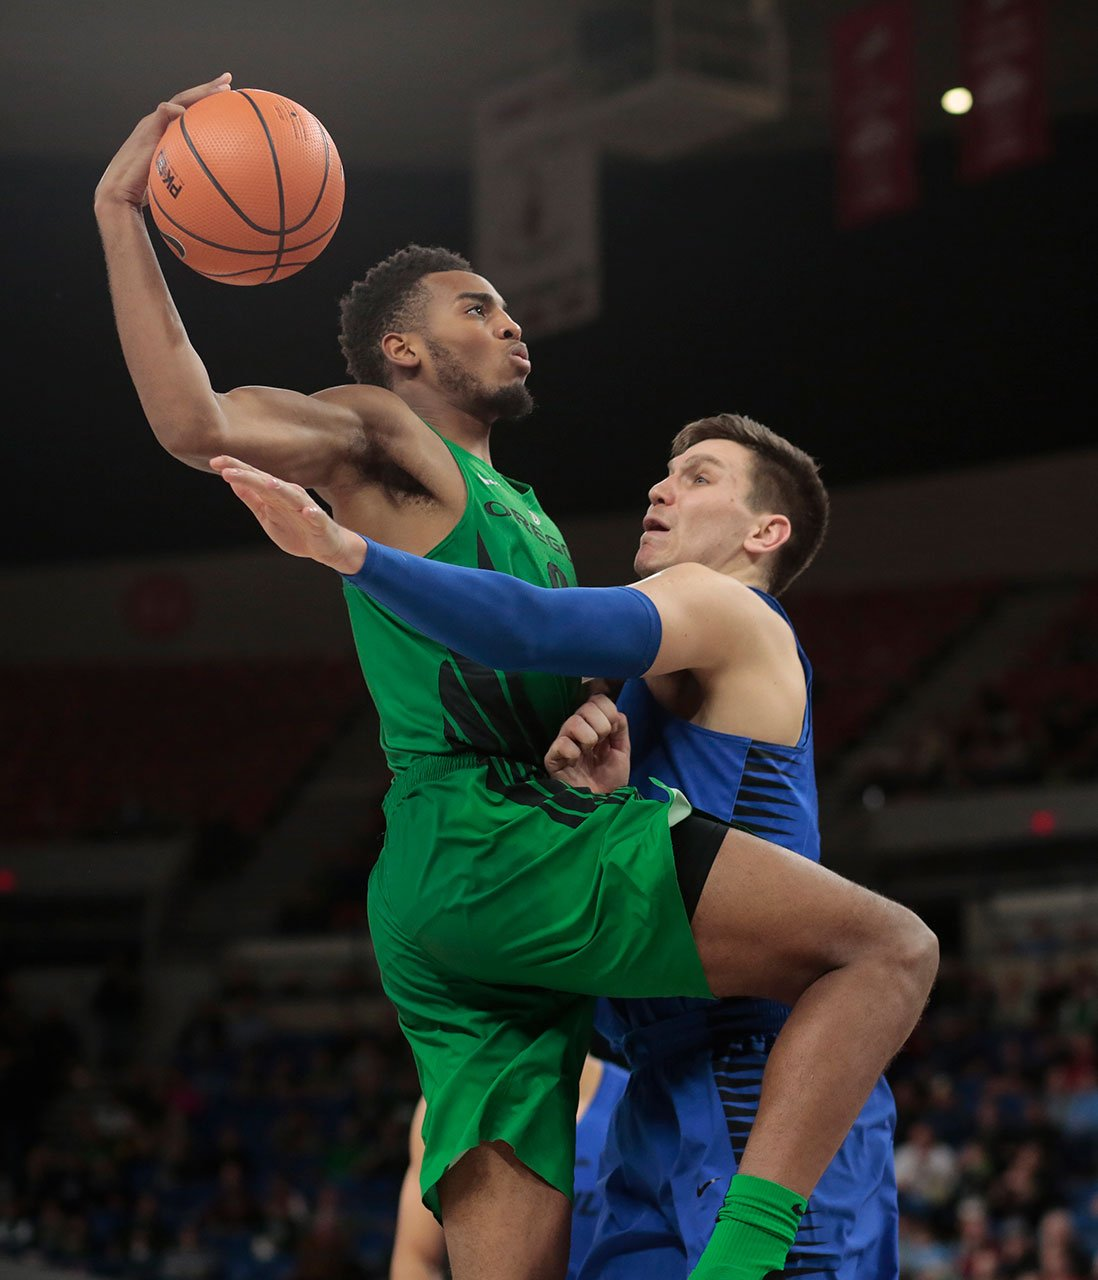 Oregon's Troy Brown tries to drive the lane while guarded by DePaul's Marin Maric in the second half of an NCAA college basketball game during the Phil Knight Invitational tournament in Portland, Ore., Friday, Nov. 24, 2017. (AP Photo/Timothy J. Gonzalez)